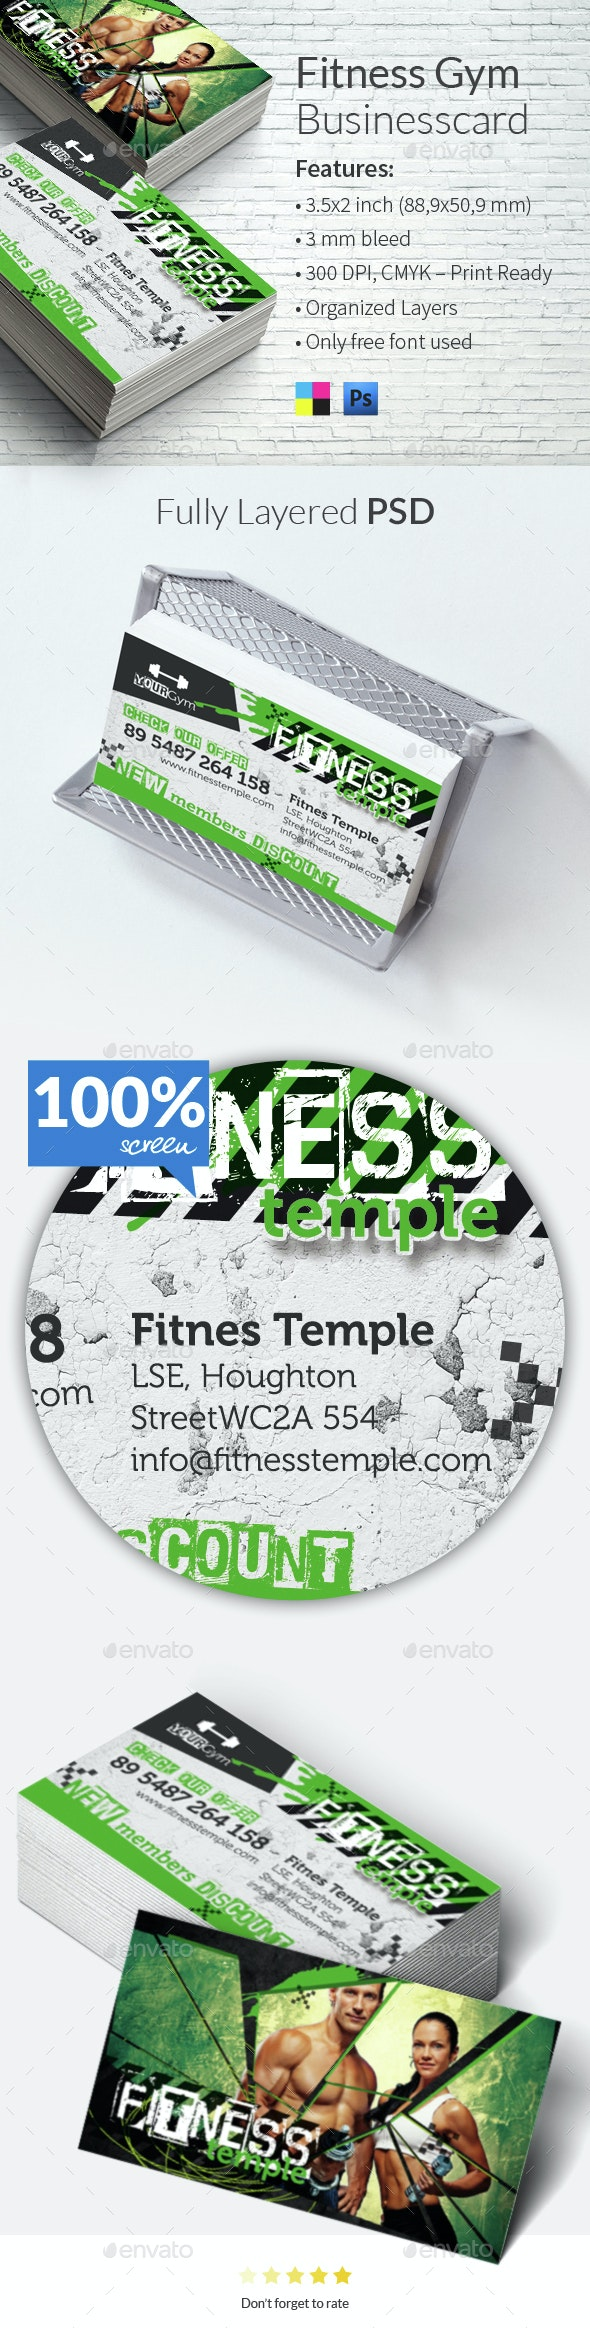 Fitness Gym Businesscard Template - Business Cards Print Templates